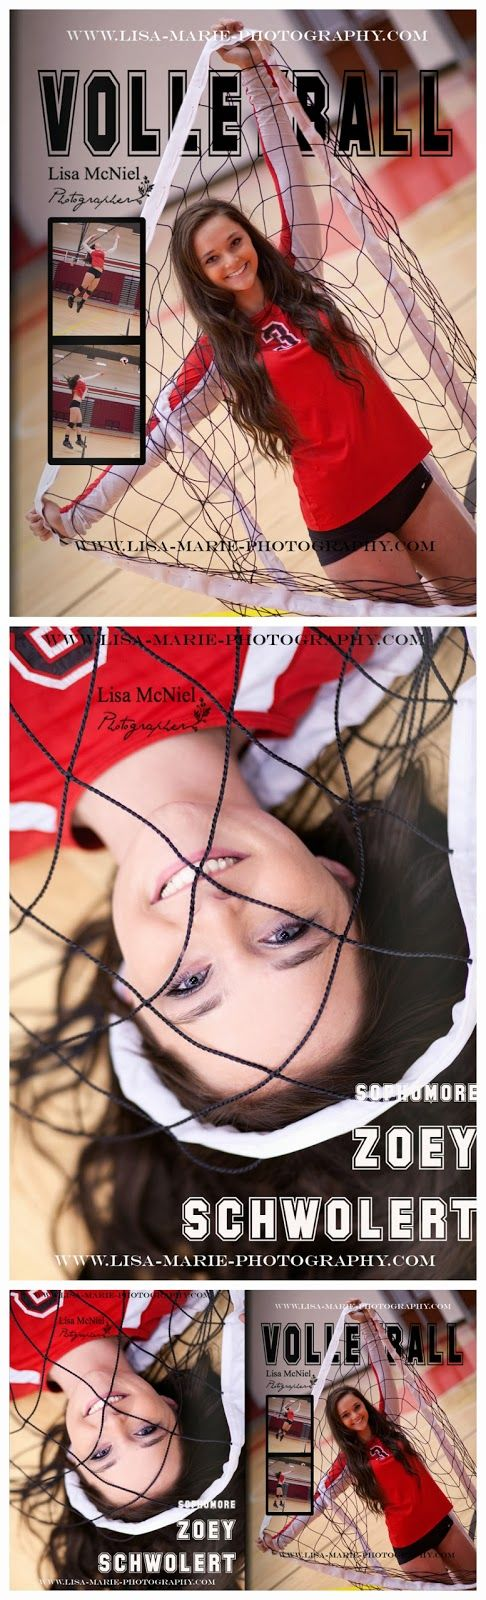 Volleyball Click the pic to get senior picture ideas and photography inspiration, North Texas Photographer #Portraits #Seniorpictures #volleyball www.Lisa-Marie-Photography.com